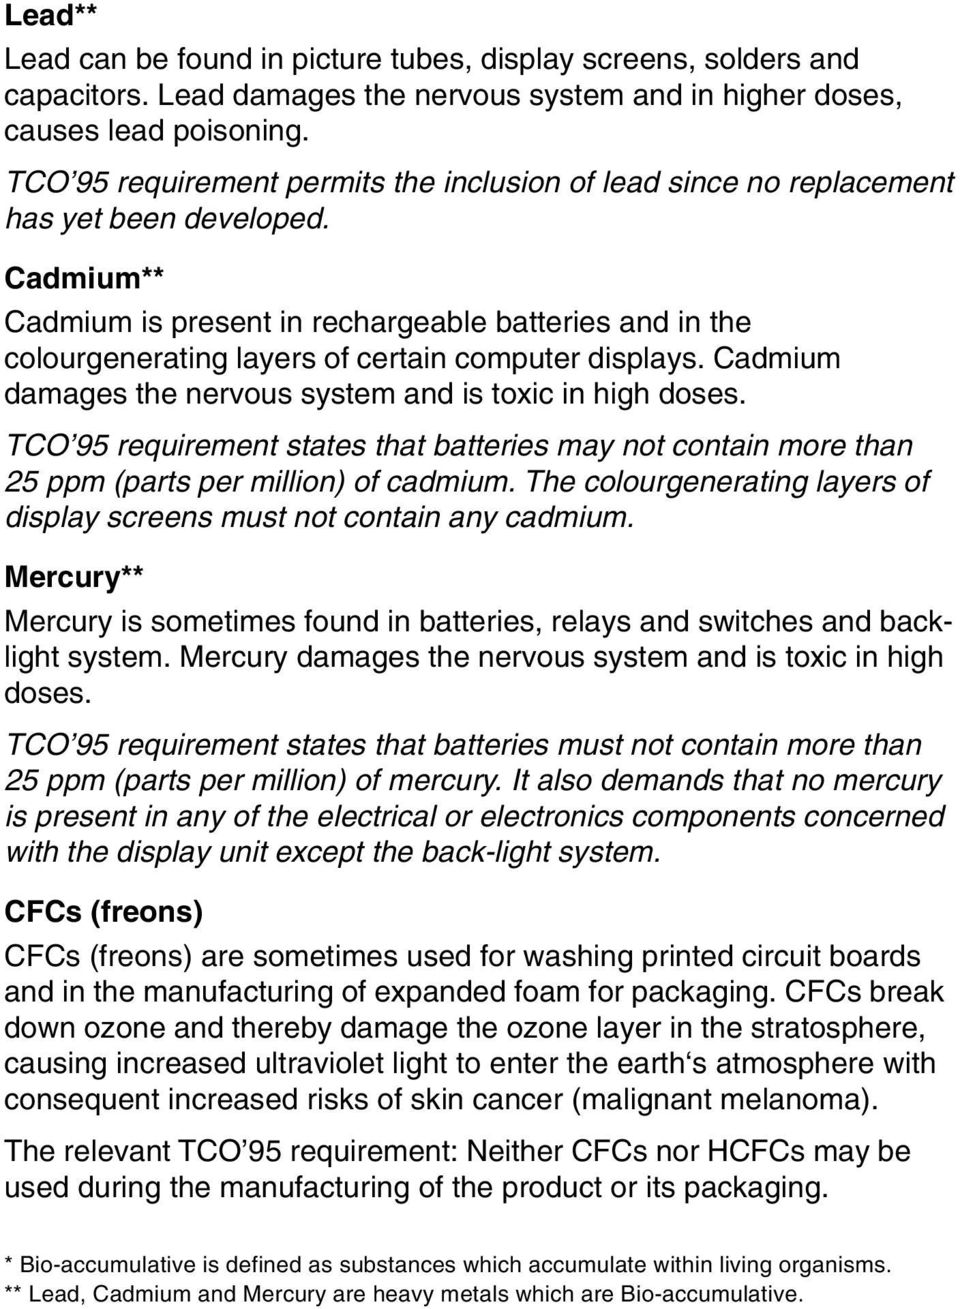 Cadmium** Cadmium is present in rechargeable batteries and in the colourgenerating layers of certain computer displays. Cadmium damages the nervous system and is toxic in high doses.